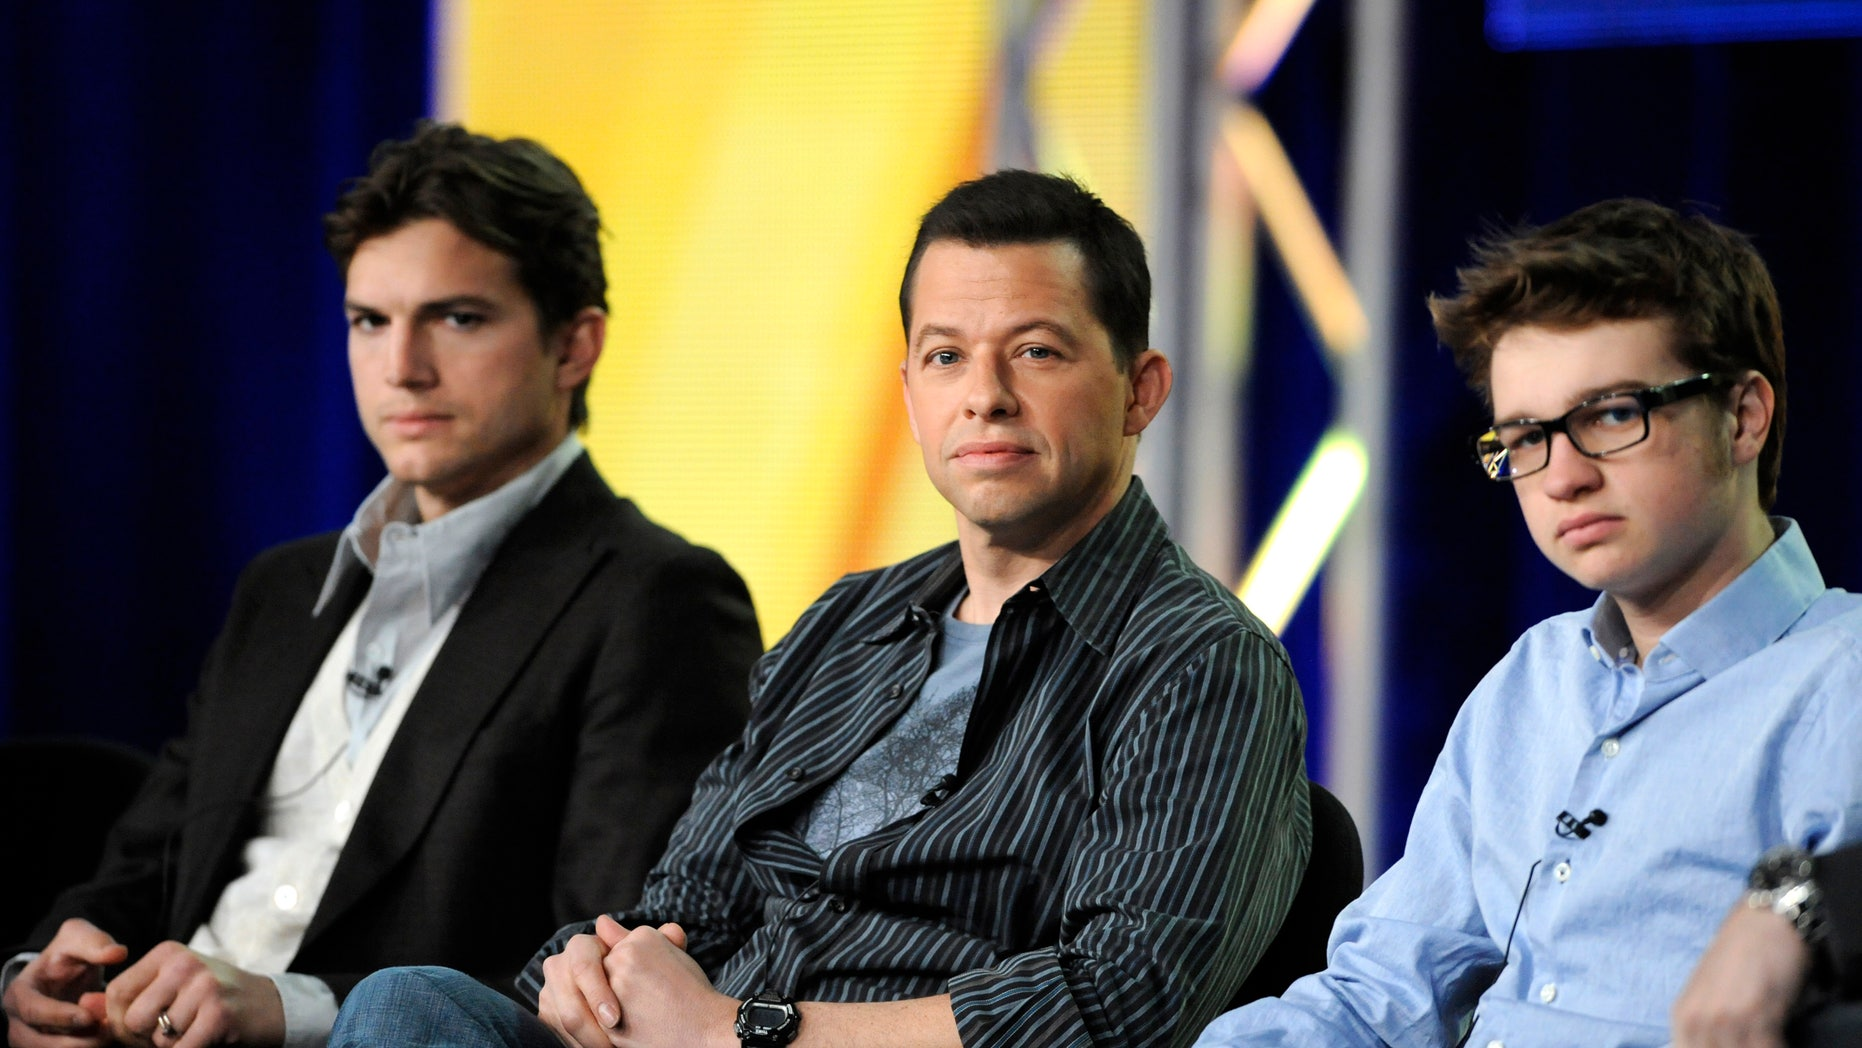 """Jan. 11, 2012: Cast members Ashton Kutcher (L), Jon Cryer (C) and Angus T. Jones (R) participate in a panel for CBS series """"Two and a Half Men"""" during the CBS sessions at the Television Critics Association winter press tour in Pasadena, Calif."""